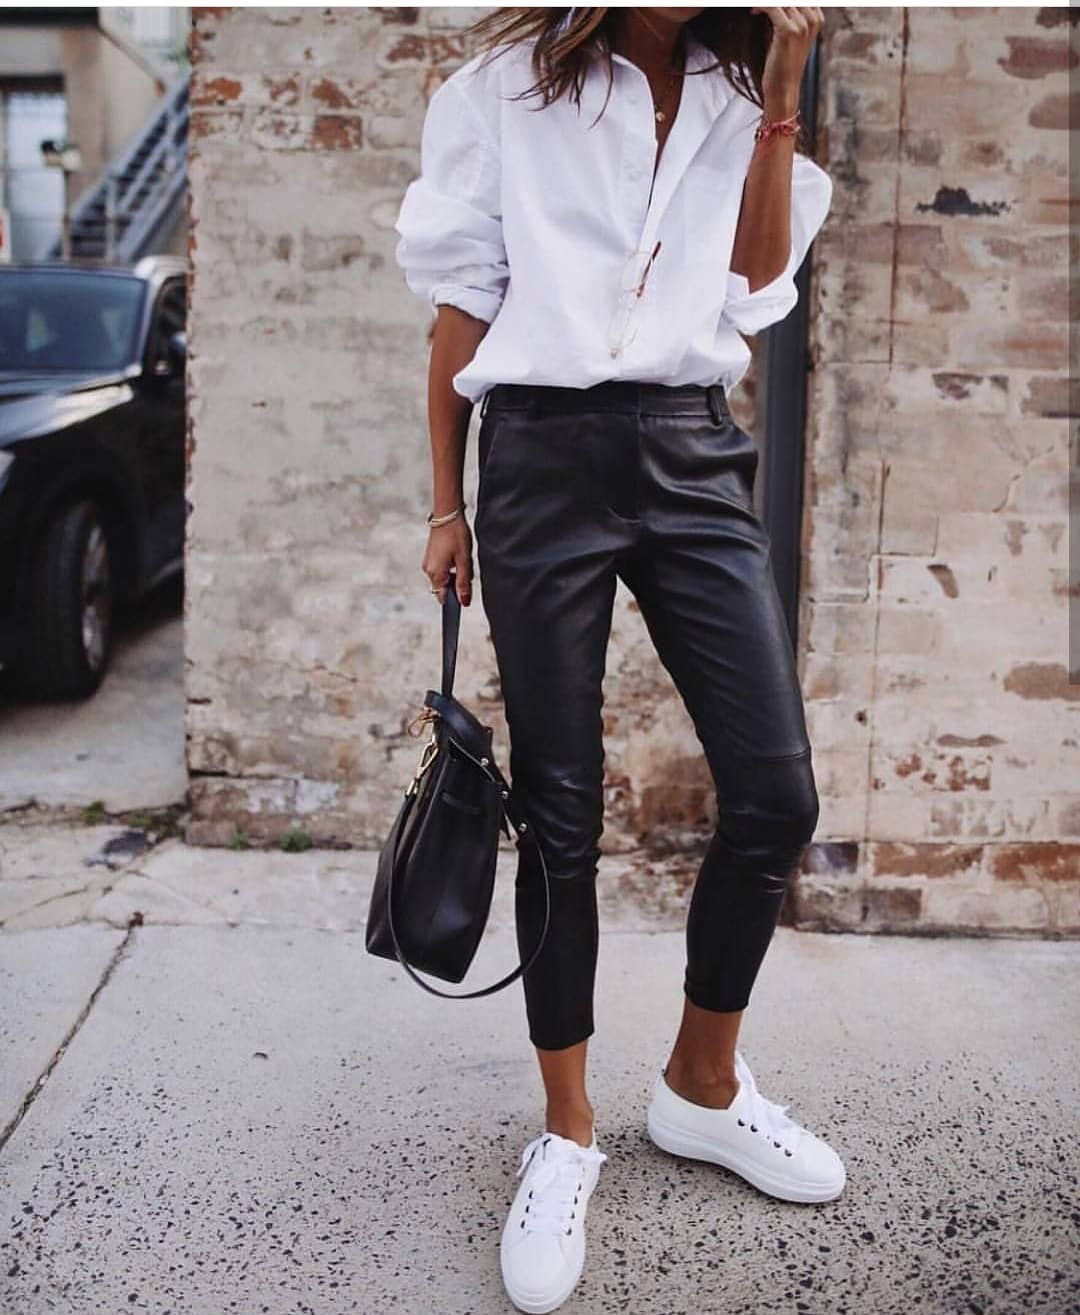 White Shirt With Black Leather Pants And White Kicks For Summer 2020